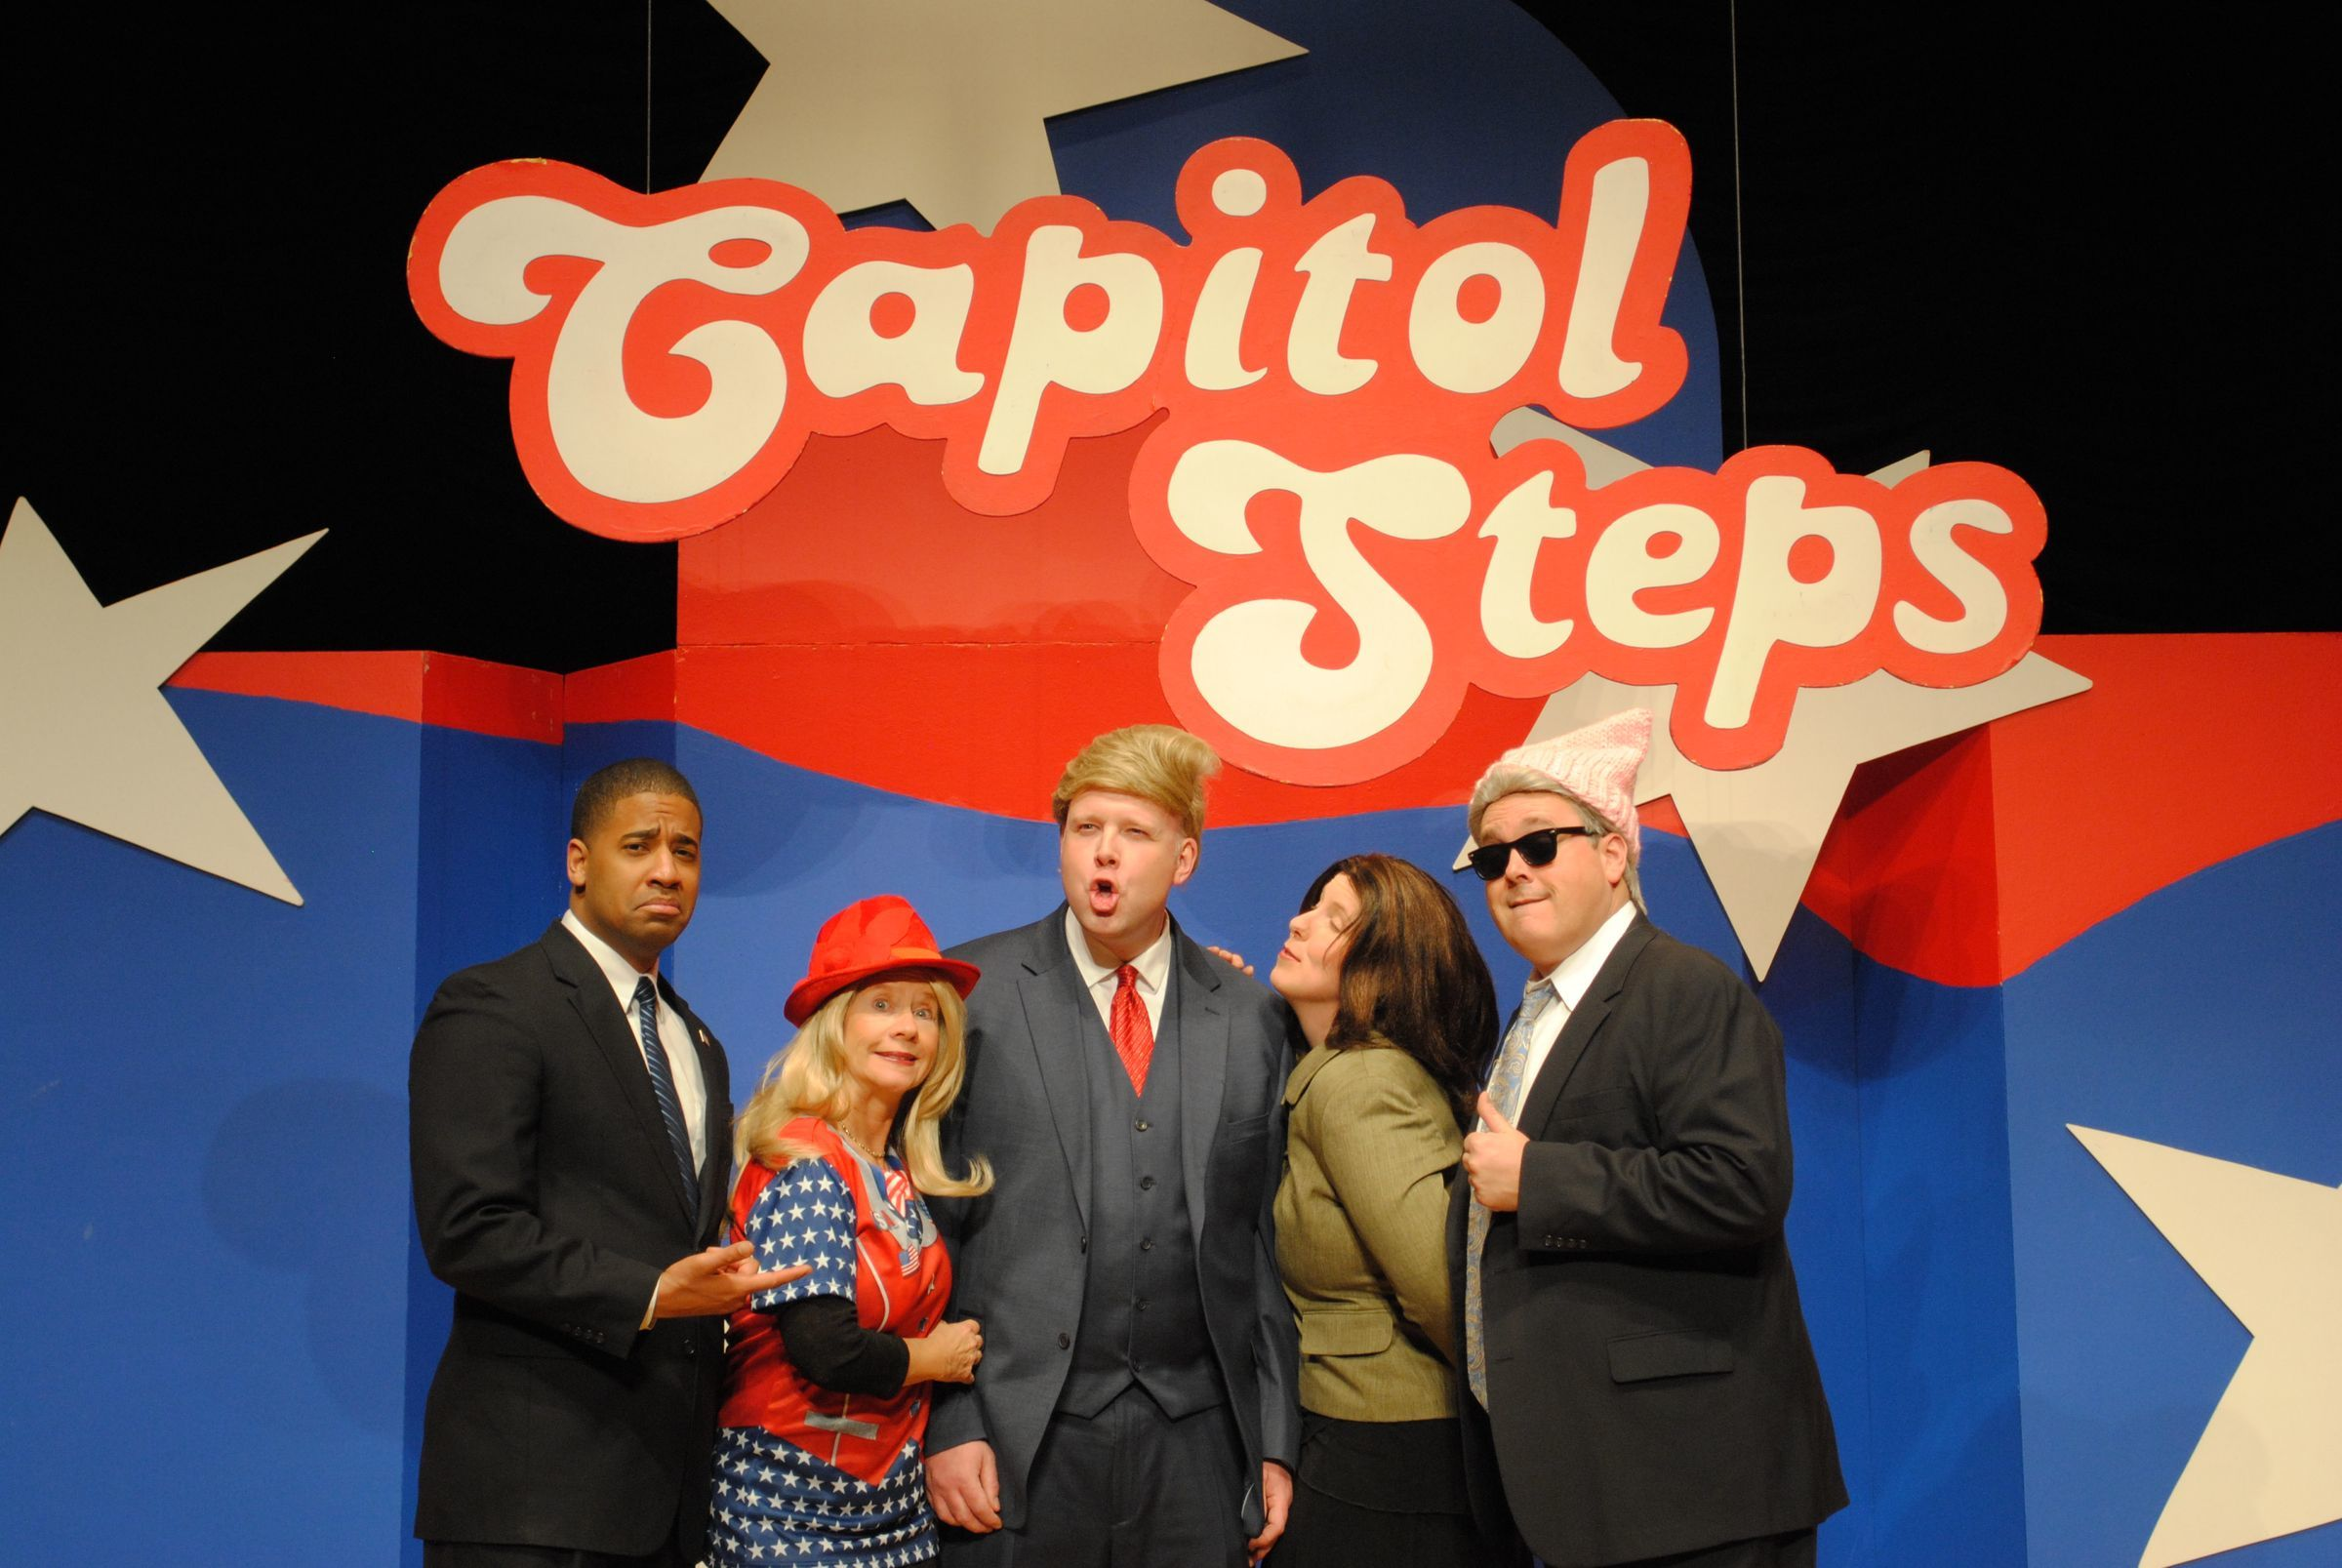 The Capitol Steps are a Fourth of July tradition in Ann Arbor.